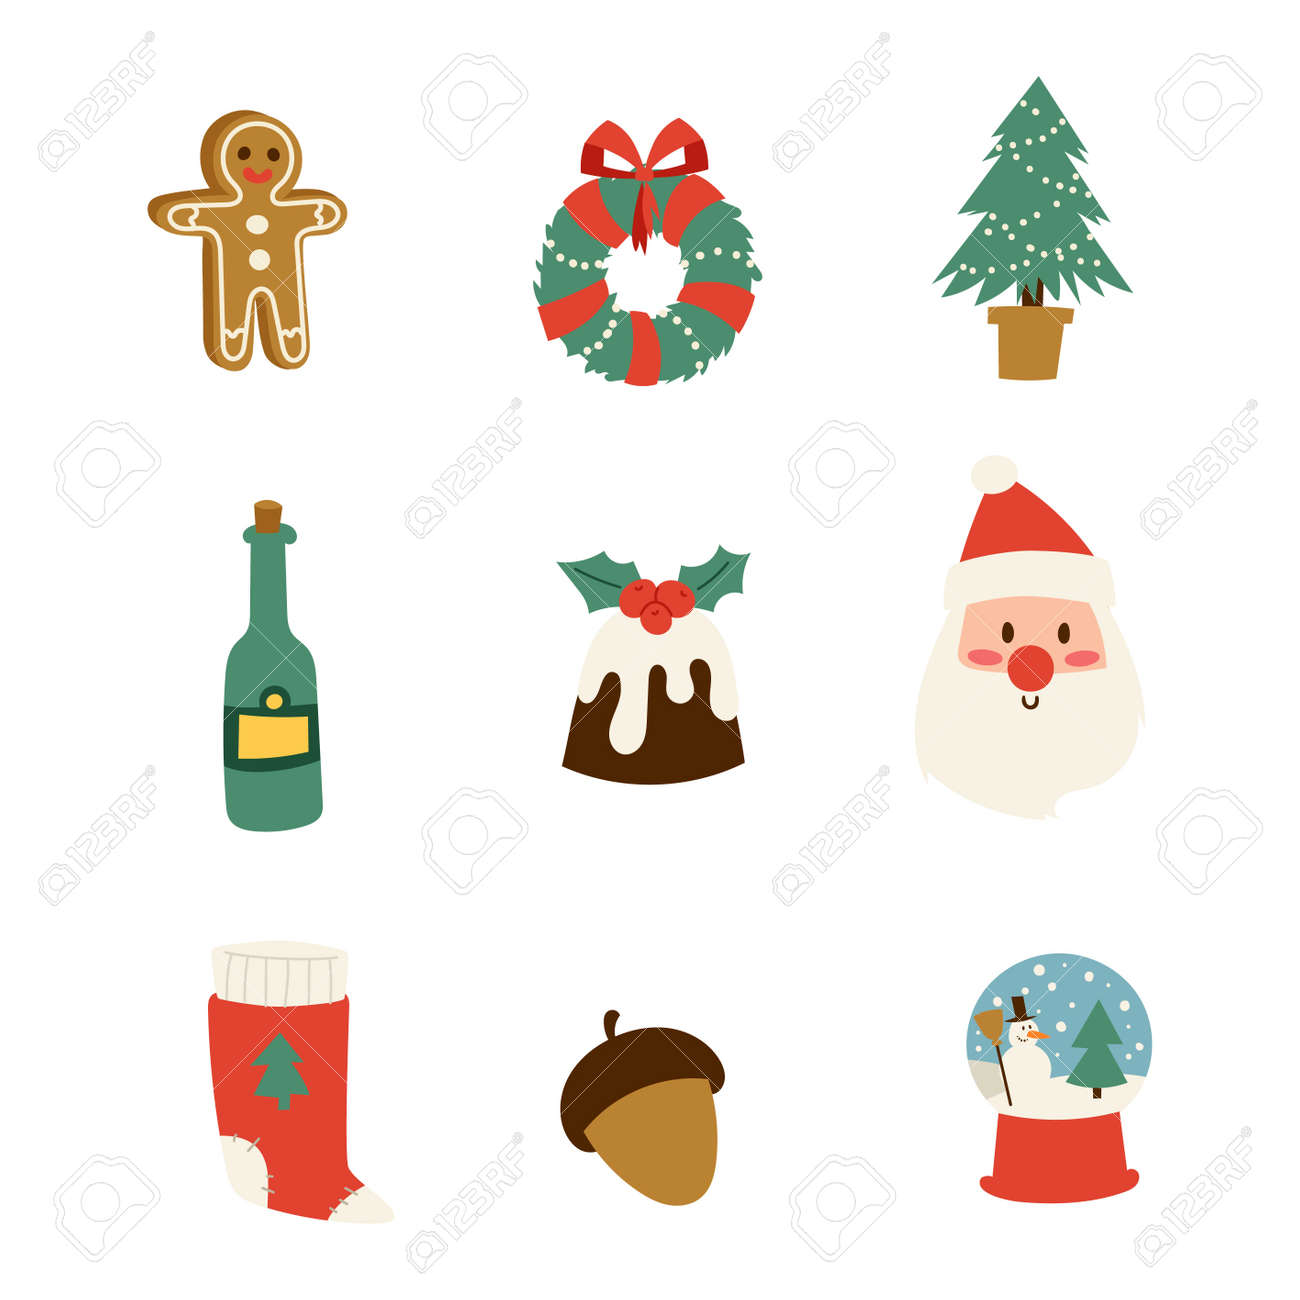 Christmas Icons Symbols For Greeting Card Symbols Vector Winter